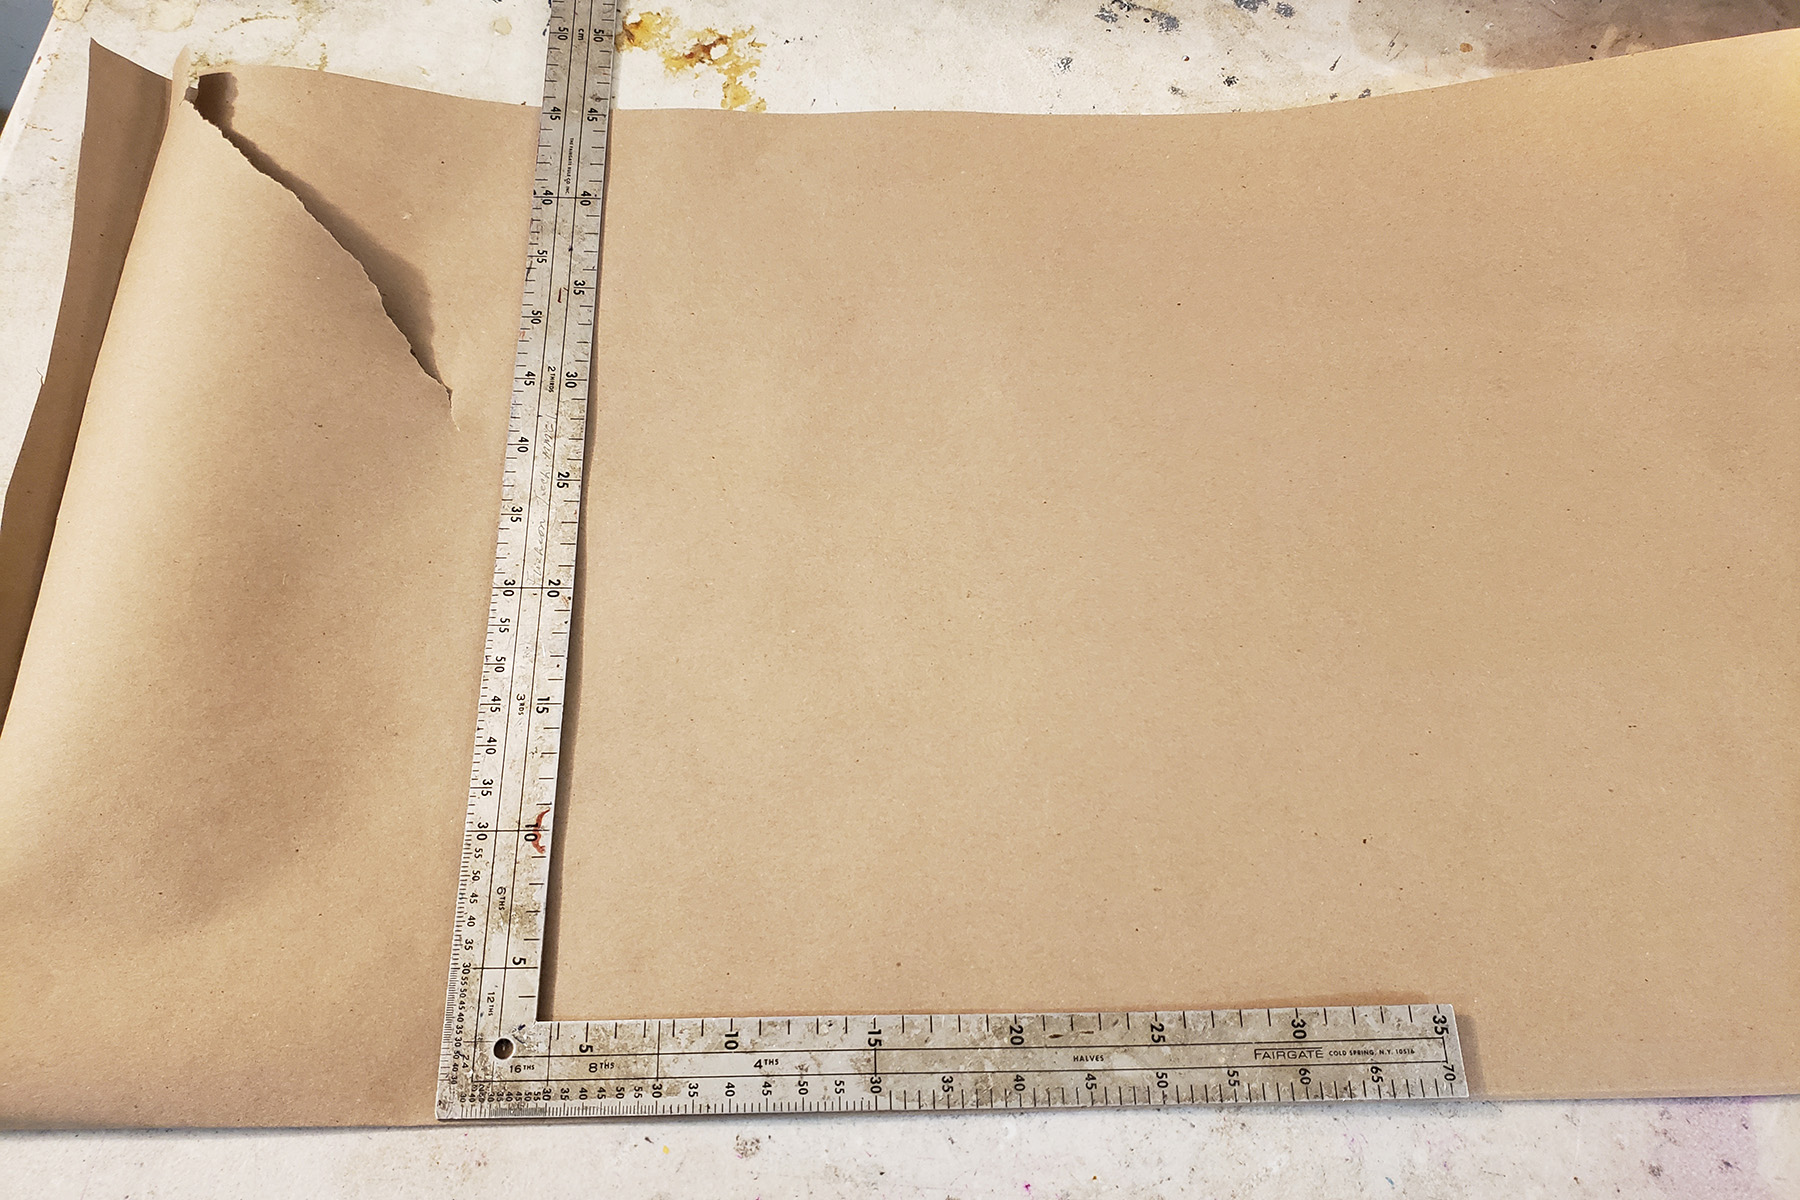 A metal square ruler rests on a large piece of brown craft paper.